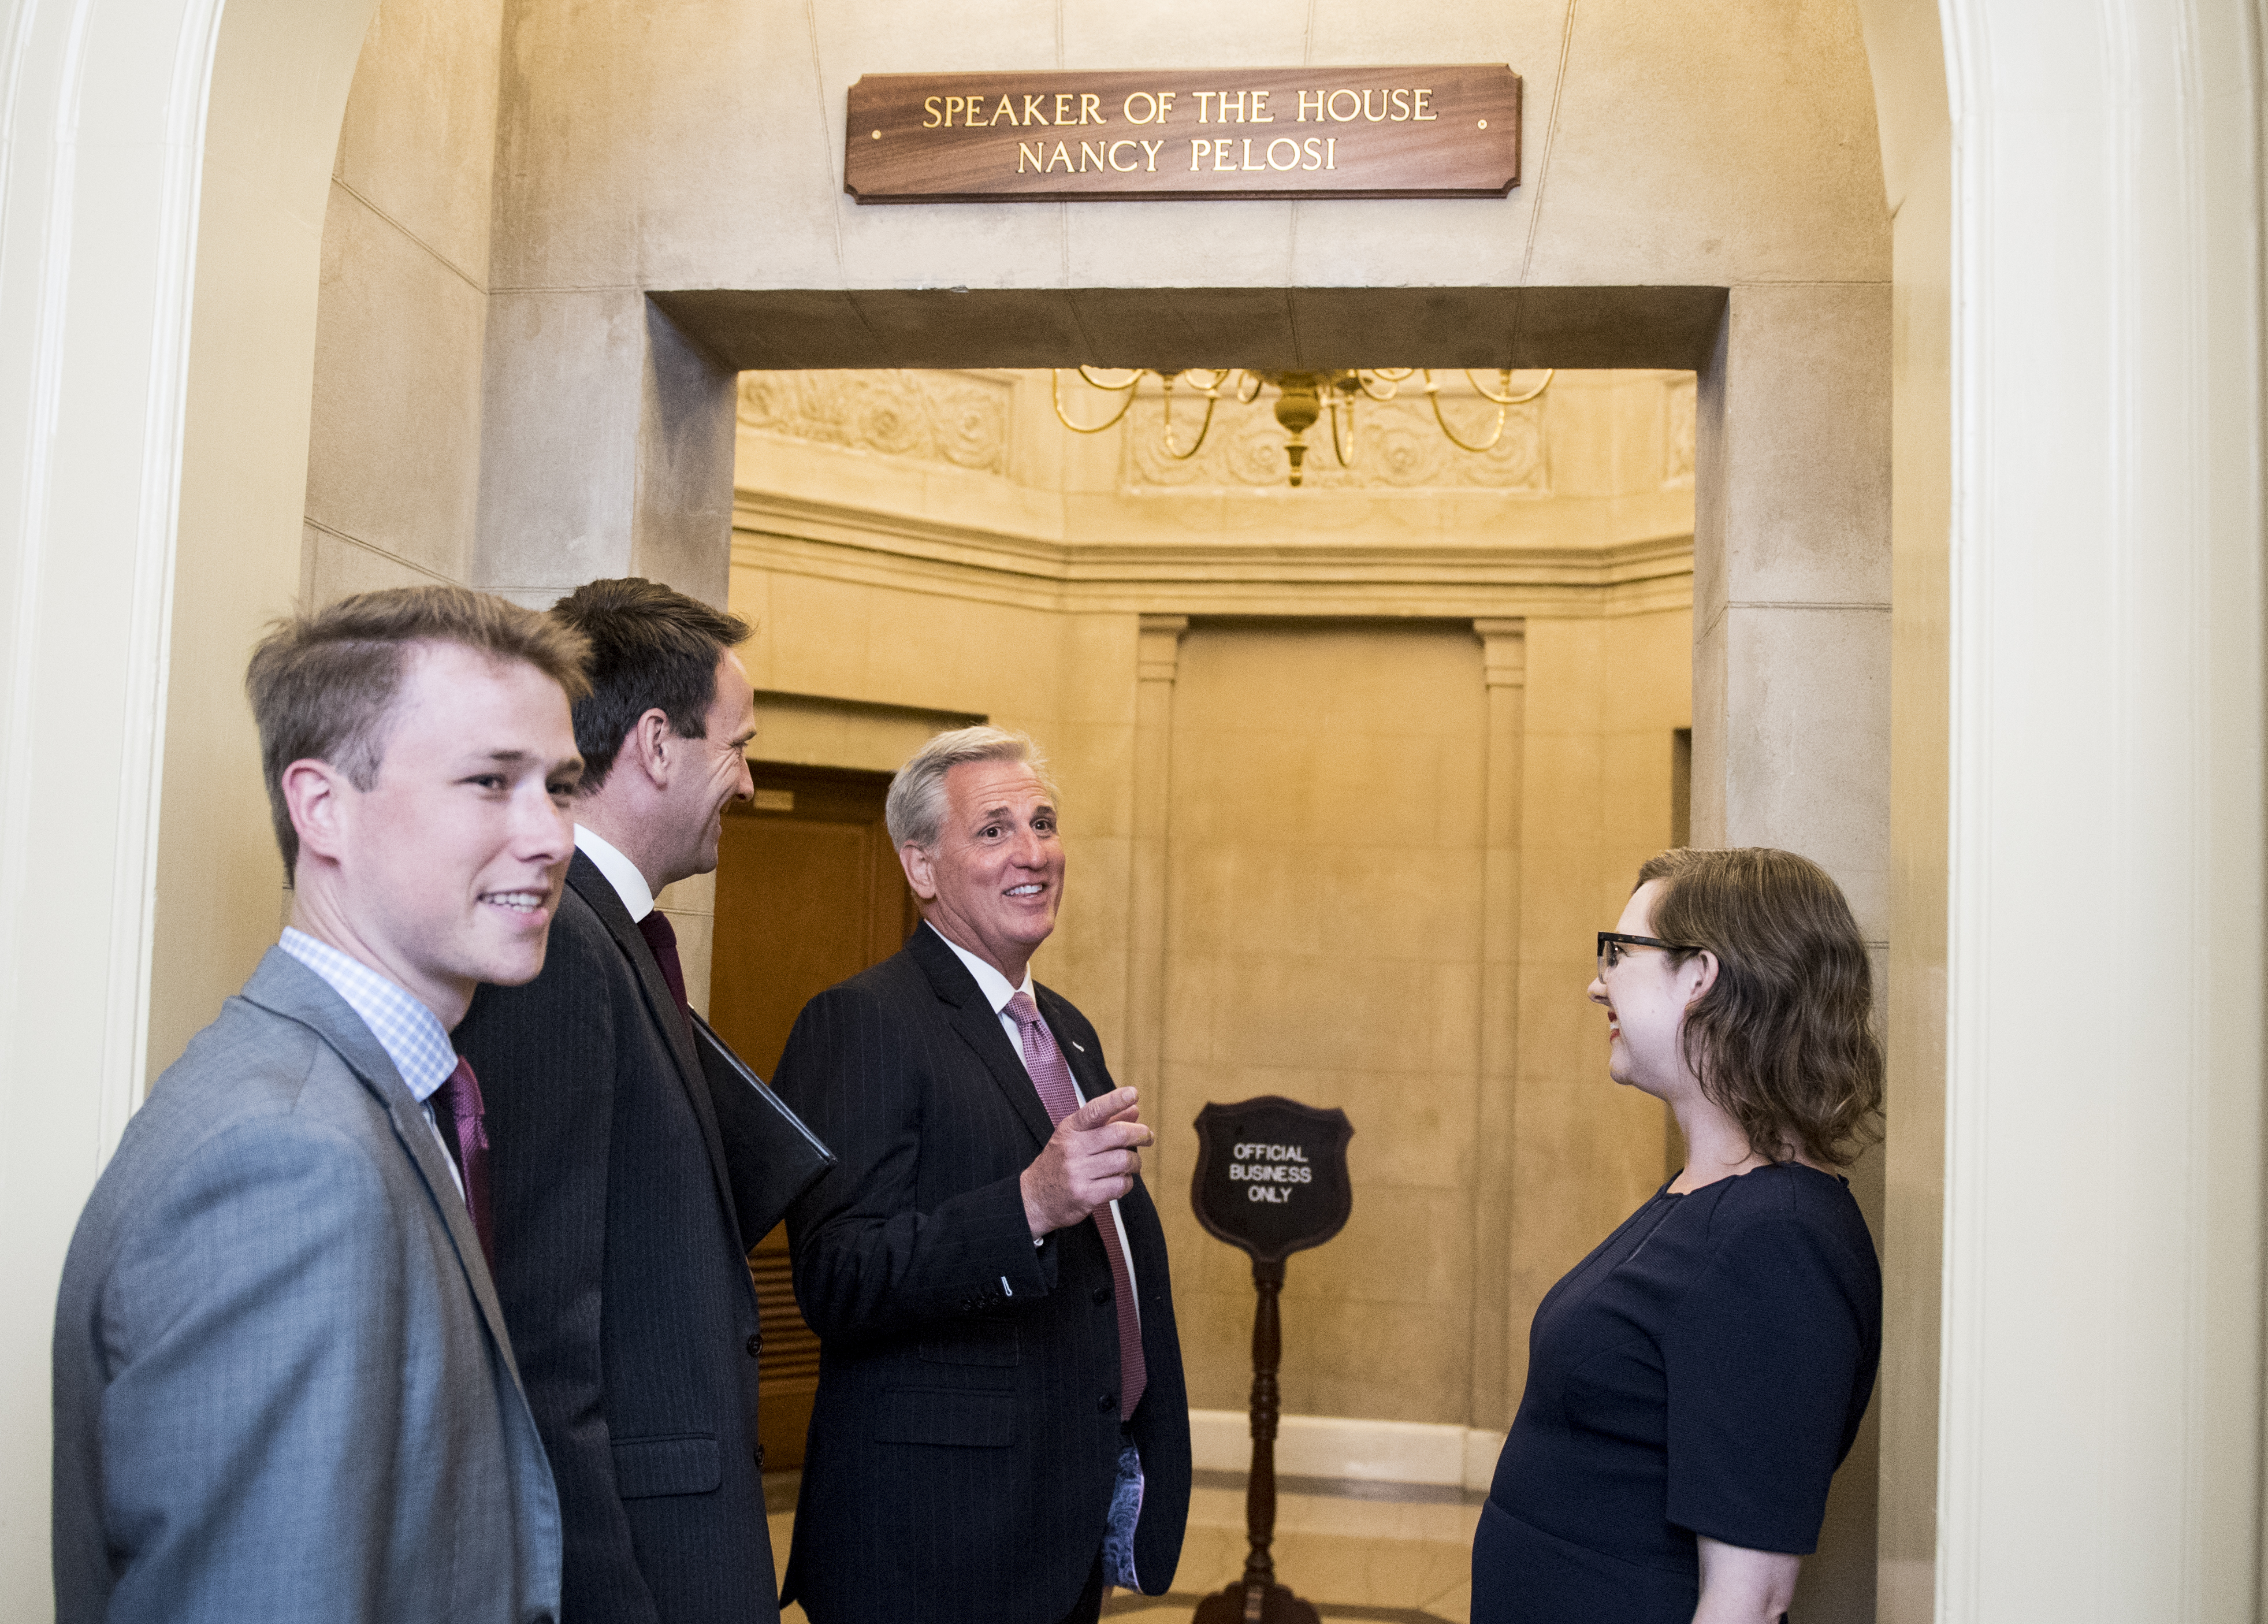 UNITED STATES - JUNE 20: House Minority Leader Kevin McCarthy, R-Calif., arrives in Speaker Pelosi's office for the meeting with Prime Minister of Canada Justin Trudeau on Thursday, June 20, 2019. (Photo By Bill Clark/CQ Roll Call)